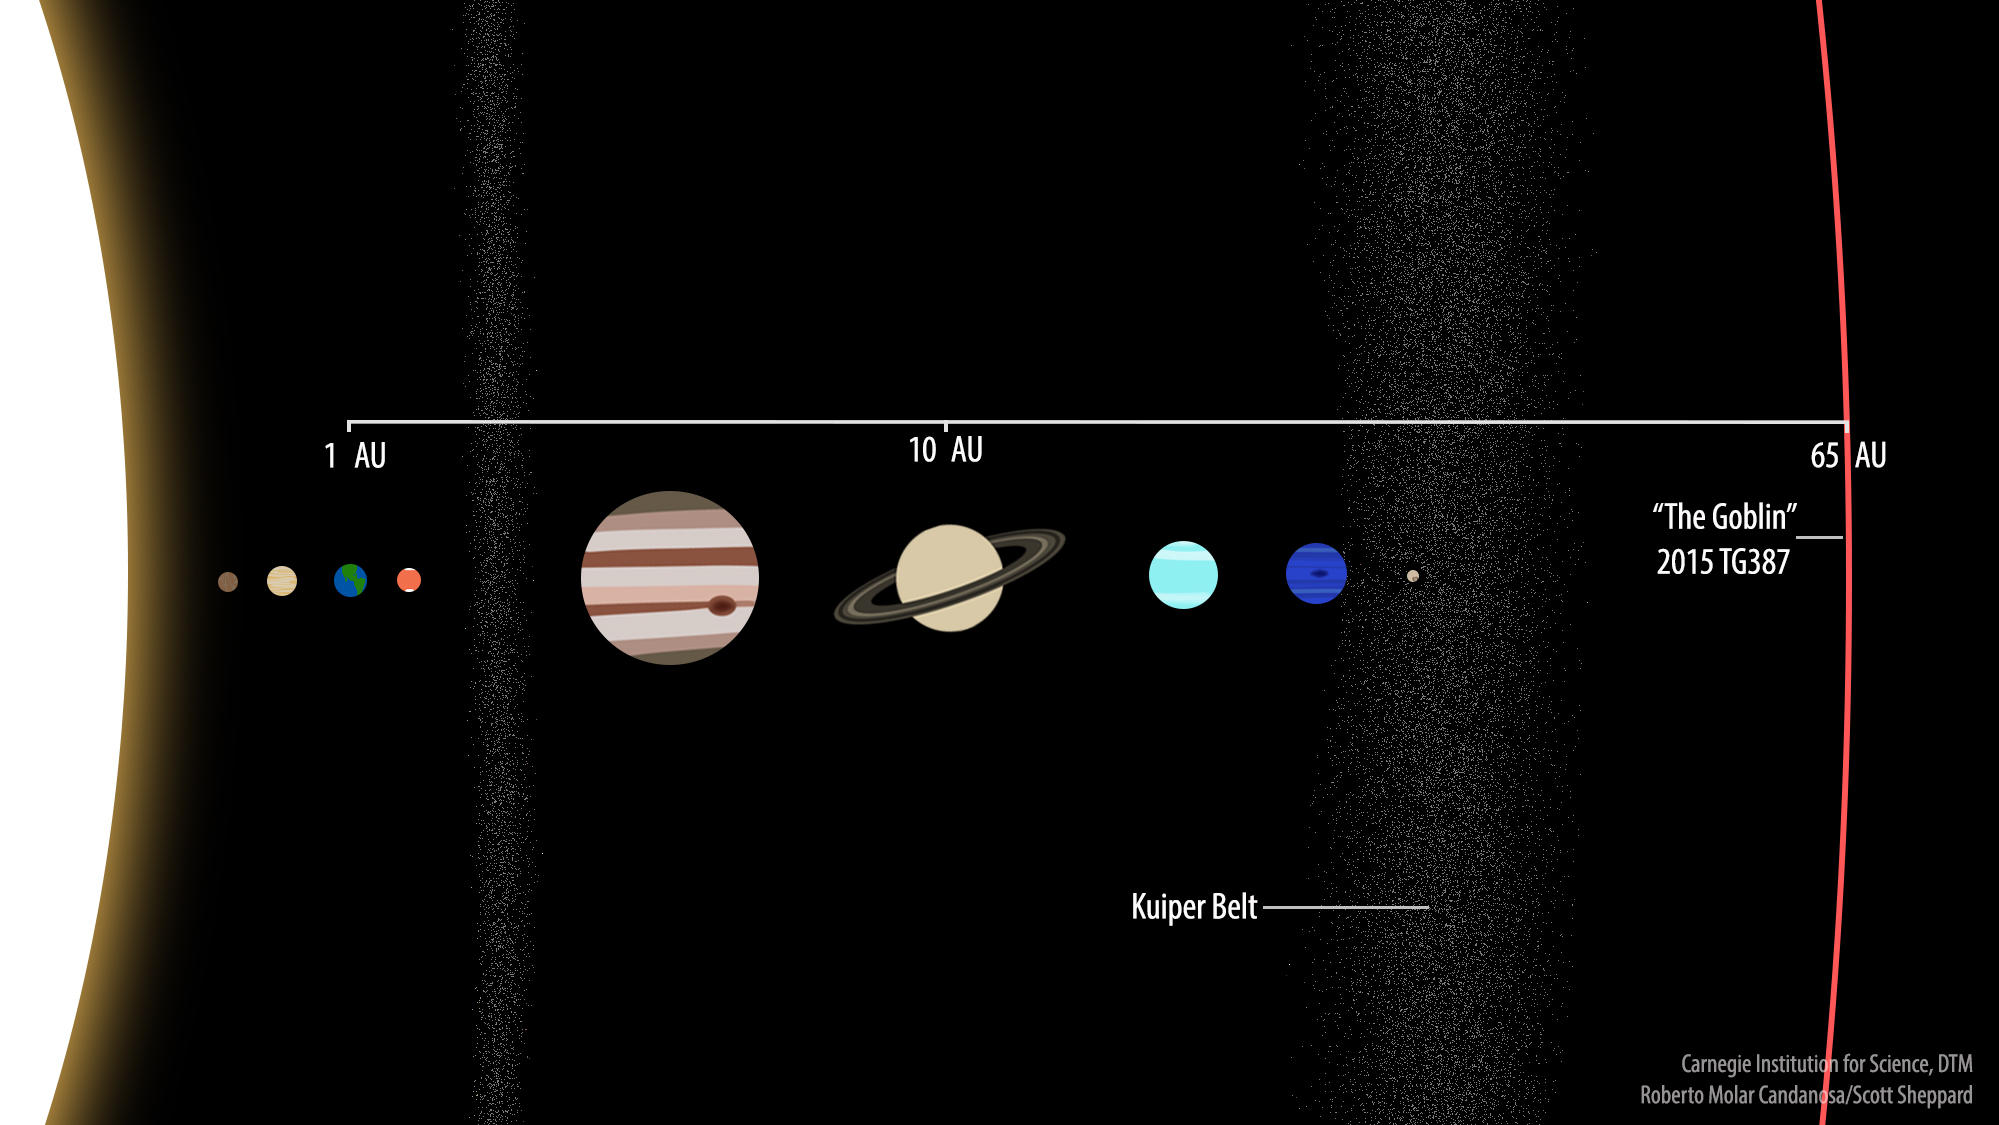 new-extreme-dwarf-planet-2015-tg387-solar-system-perspective